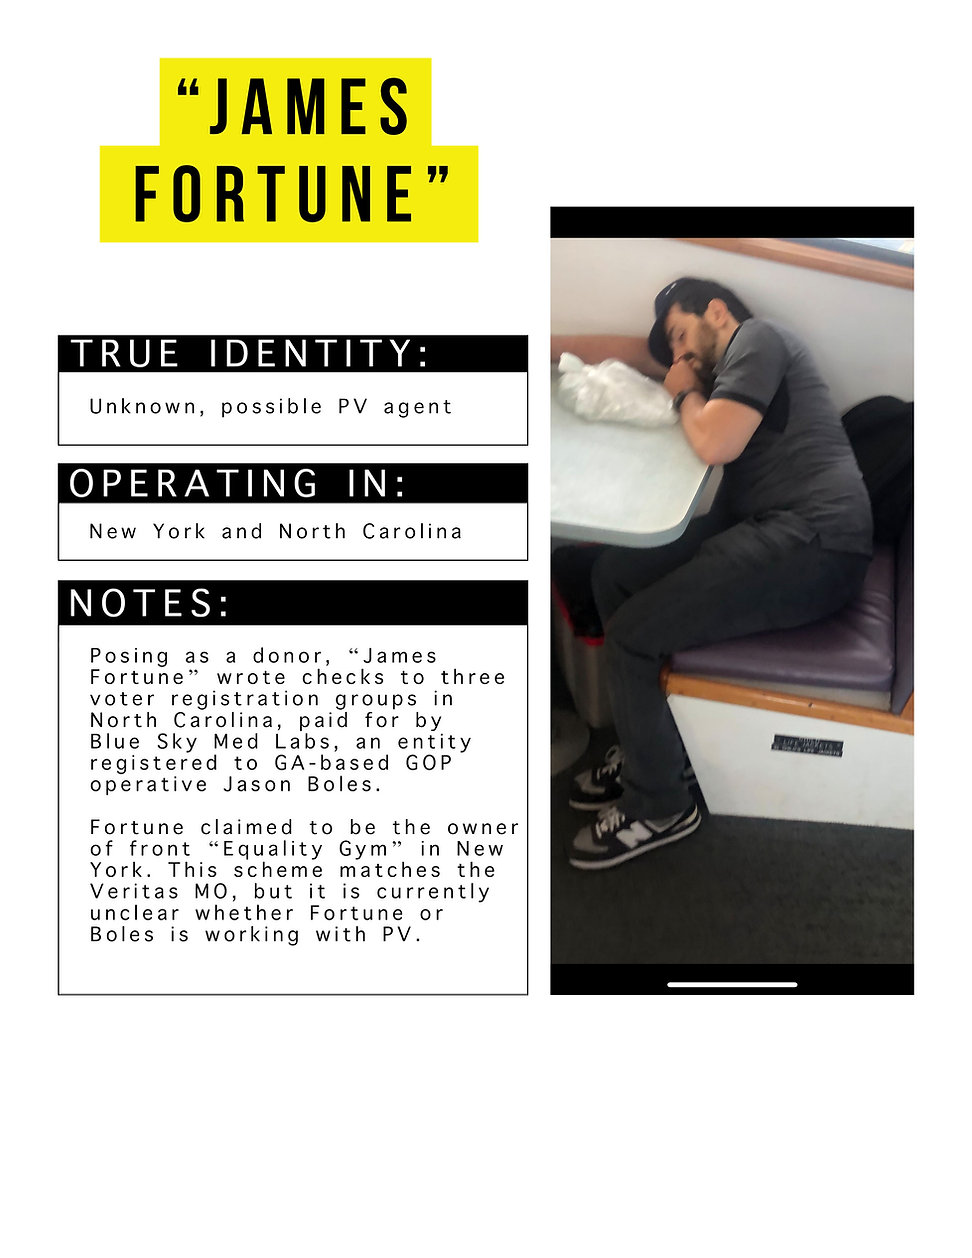 James Fortune profile.jpg